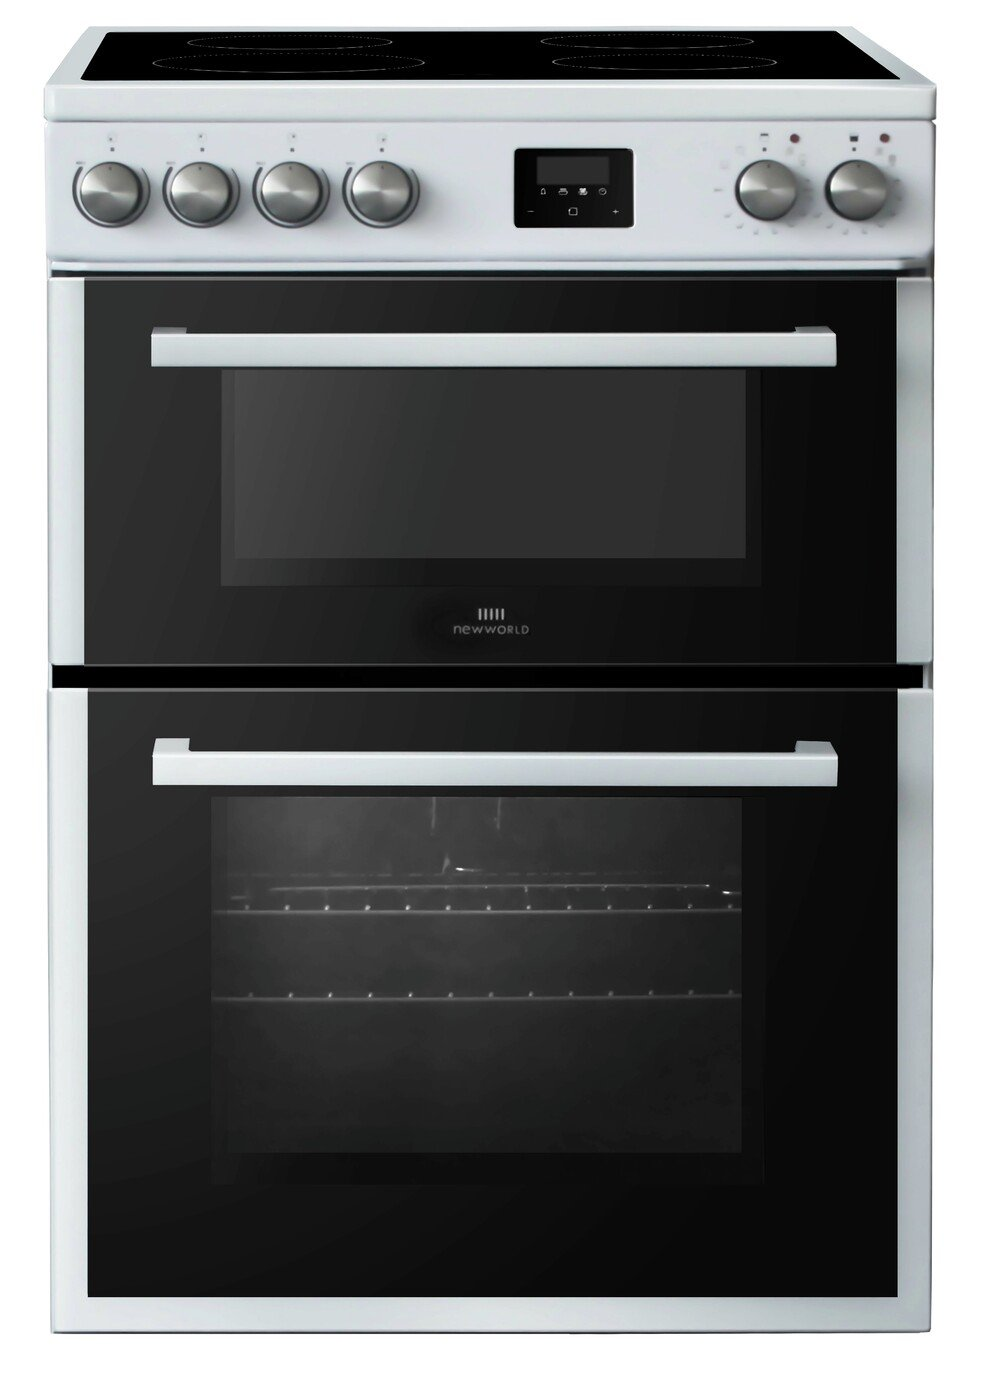 New World NWLS60DEW 60cm Double Oven Electric Cooker - White